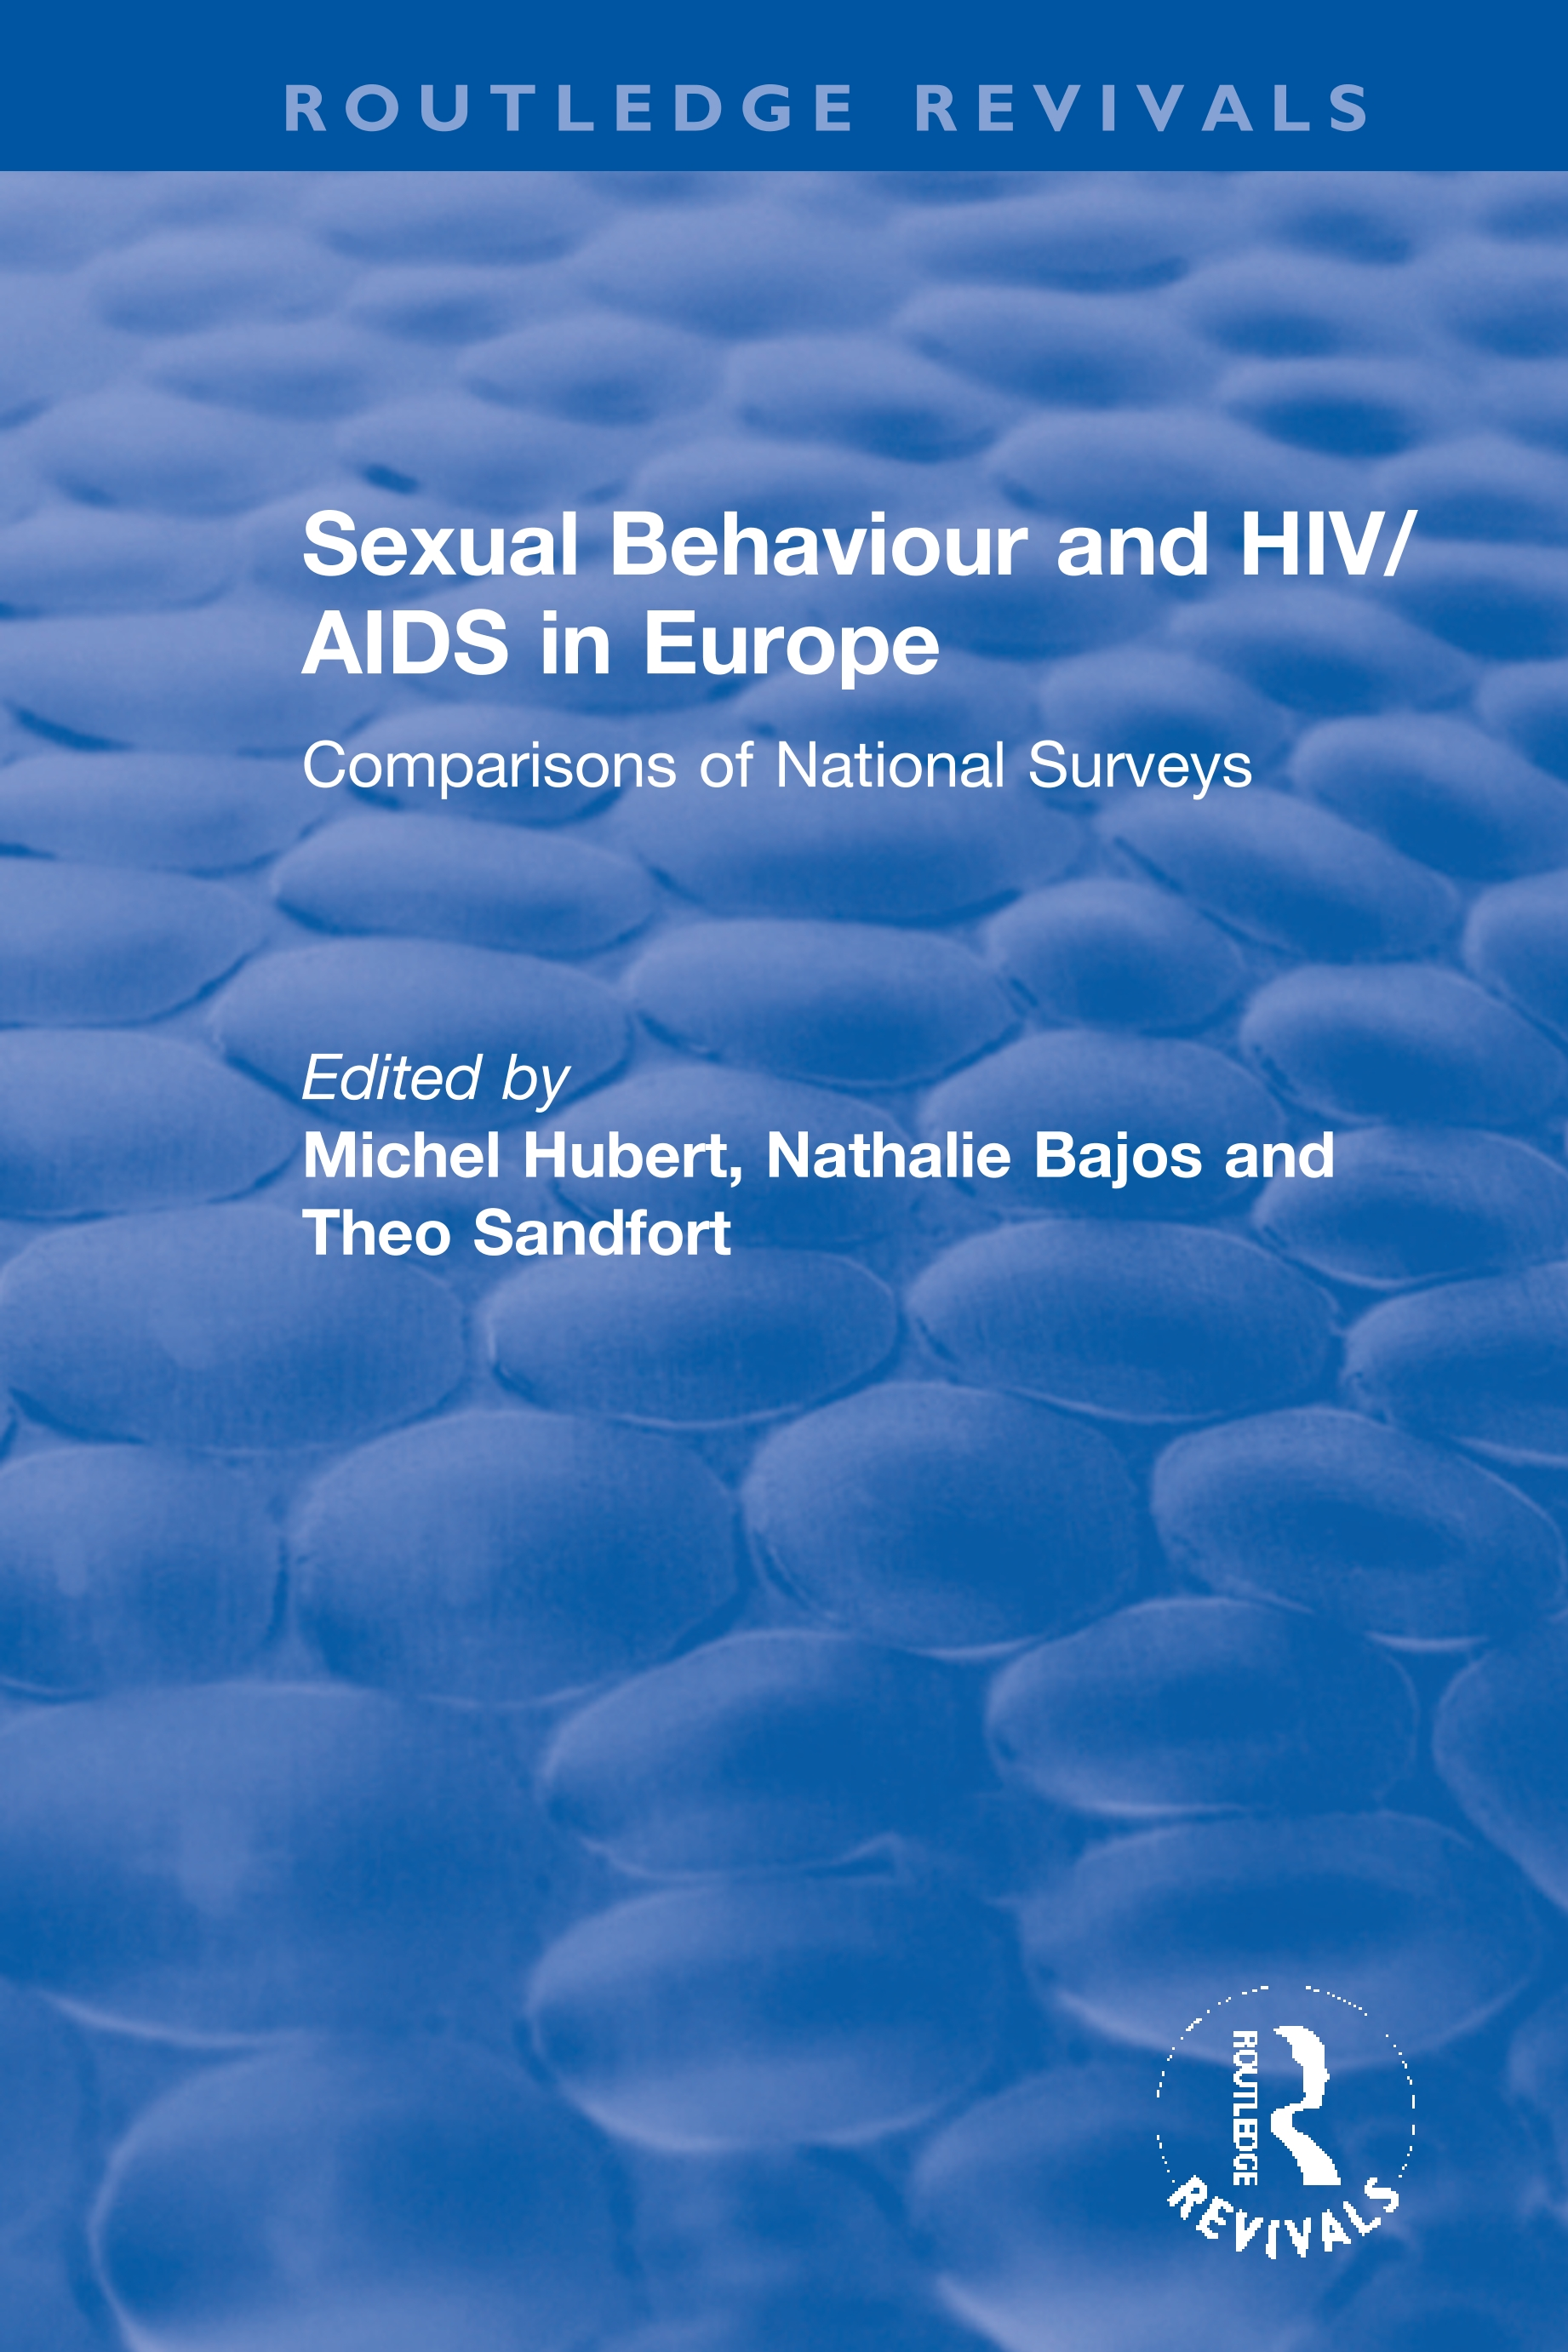 Sexual Behaviour and HIV/AIDS in Europe: Comparisons of National Surveys book cover